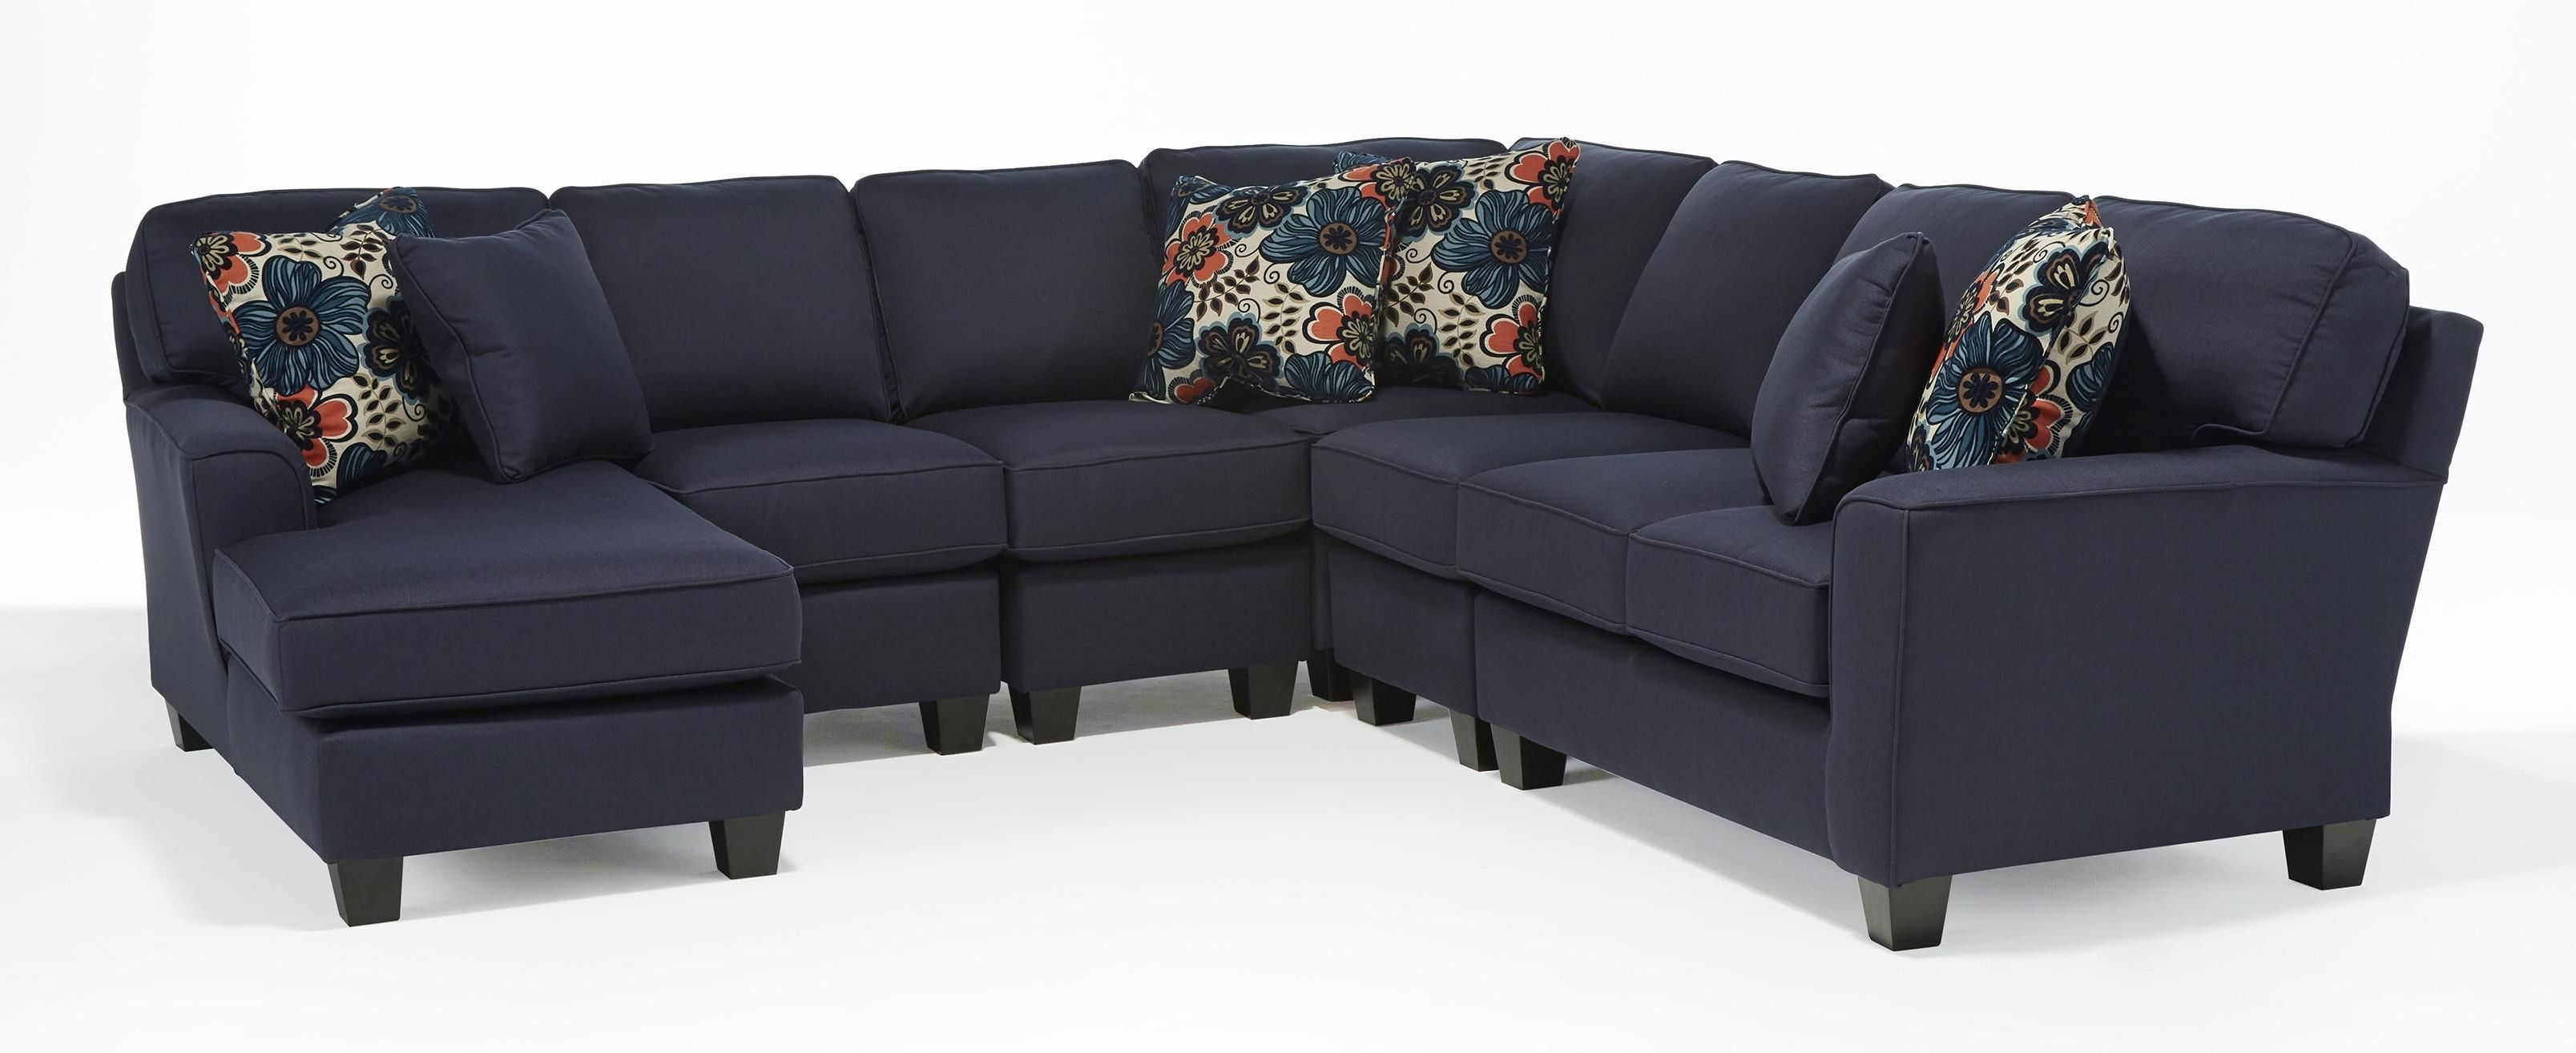 Home Furniture Sectional Sofas With Regard To Preferred Best Home Furnishings Annabel Five Piece Customizable Sectional (View 9 of 15)